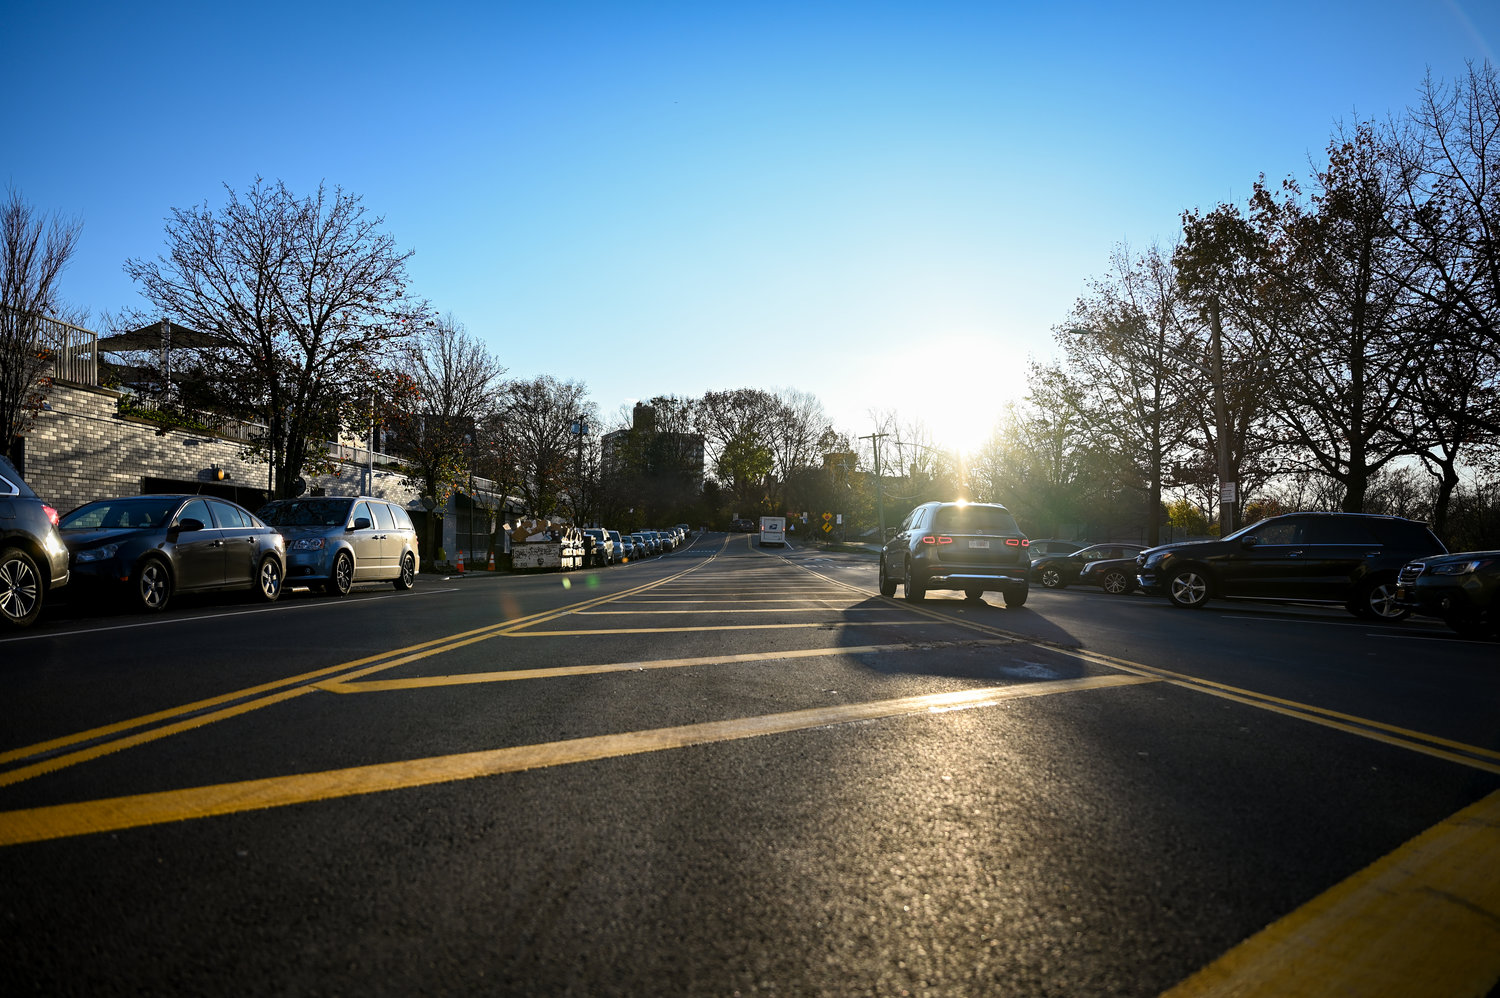 Street racing has been a resurgent issue in the community over the past few months — especially on Independence Avenue. But Community Board 8's traffic and transportation committee hopes to resolve the issue with a mixture of city intervention, community input, and legislation in Albany.